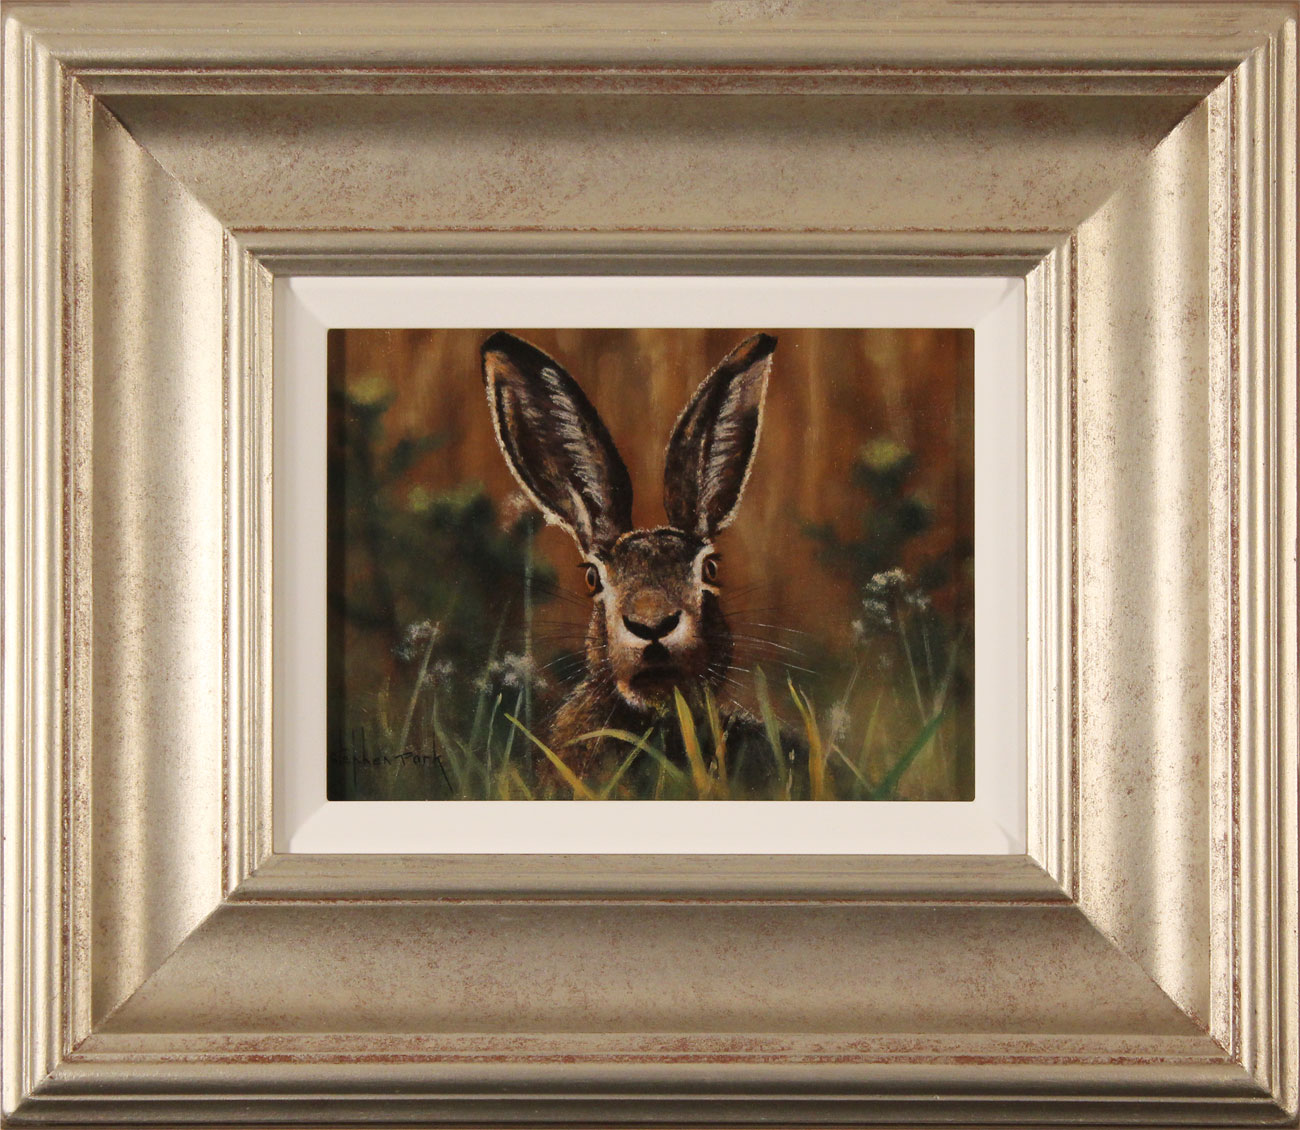 Stephen Park, Original oil painting on panel, Hare. Click to enlarge